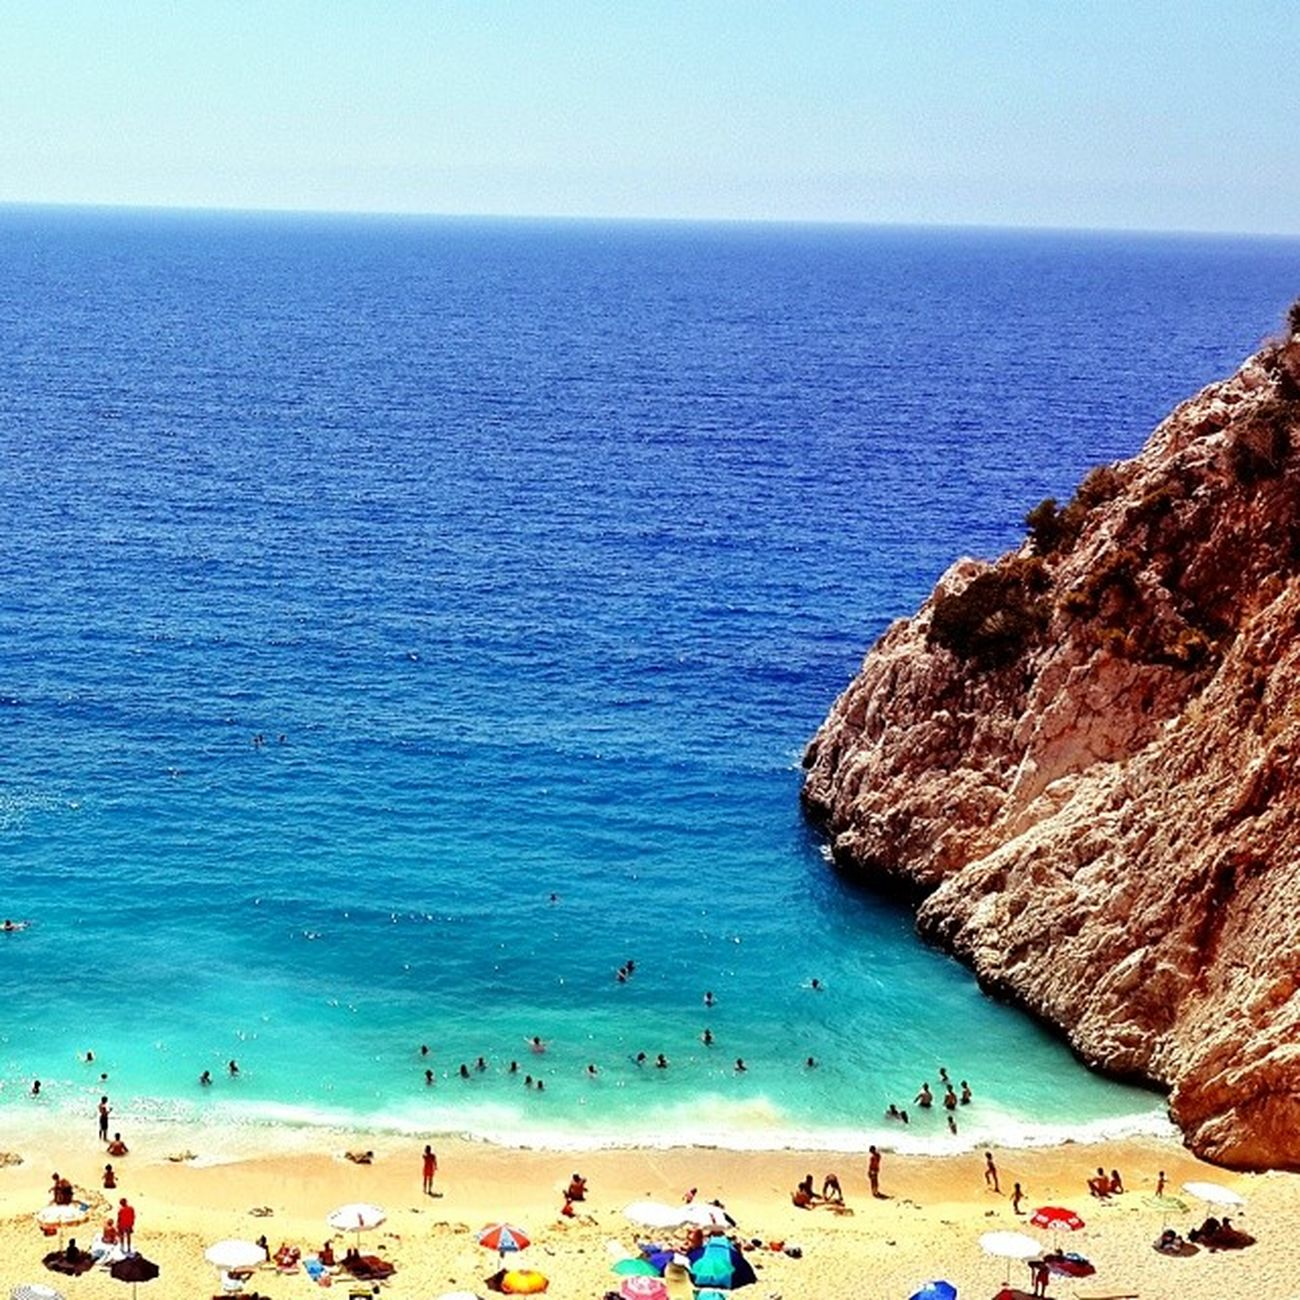 Kaputaş Beach Kalkan Kas Antalya Turkey Turquoise Water Turkuaz Sea Green Blue Sand Aquarium Aegean Crystal Clear Colorful Holiday Instamood Cove Instagood Landscape Nature Sun photoofday poster sky summer